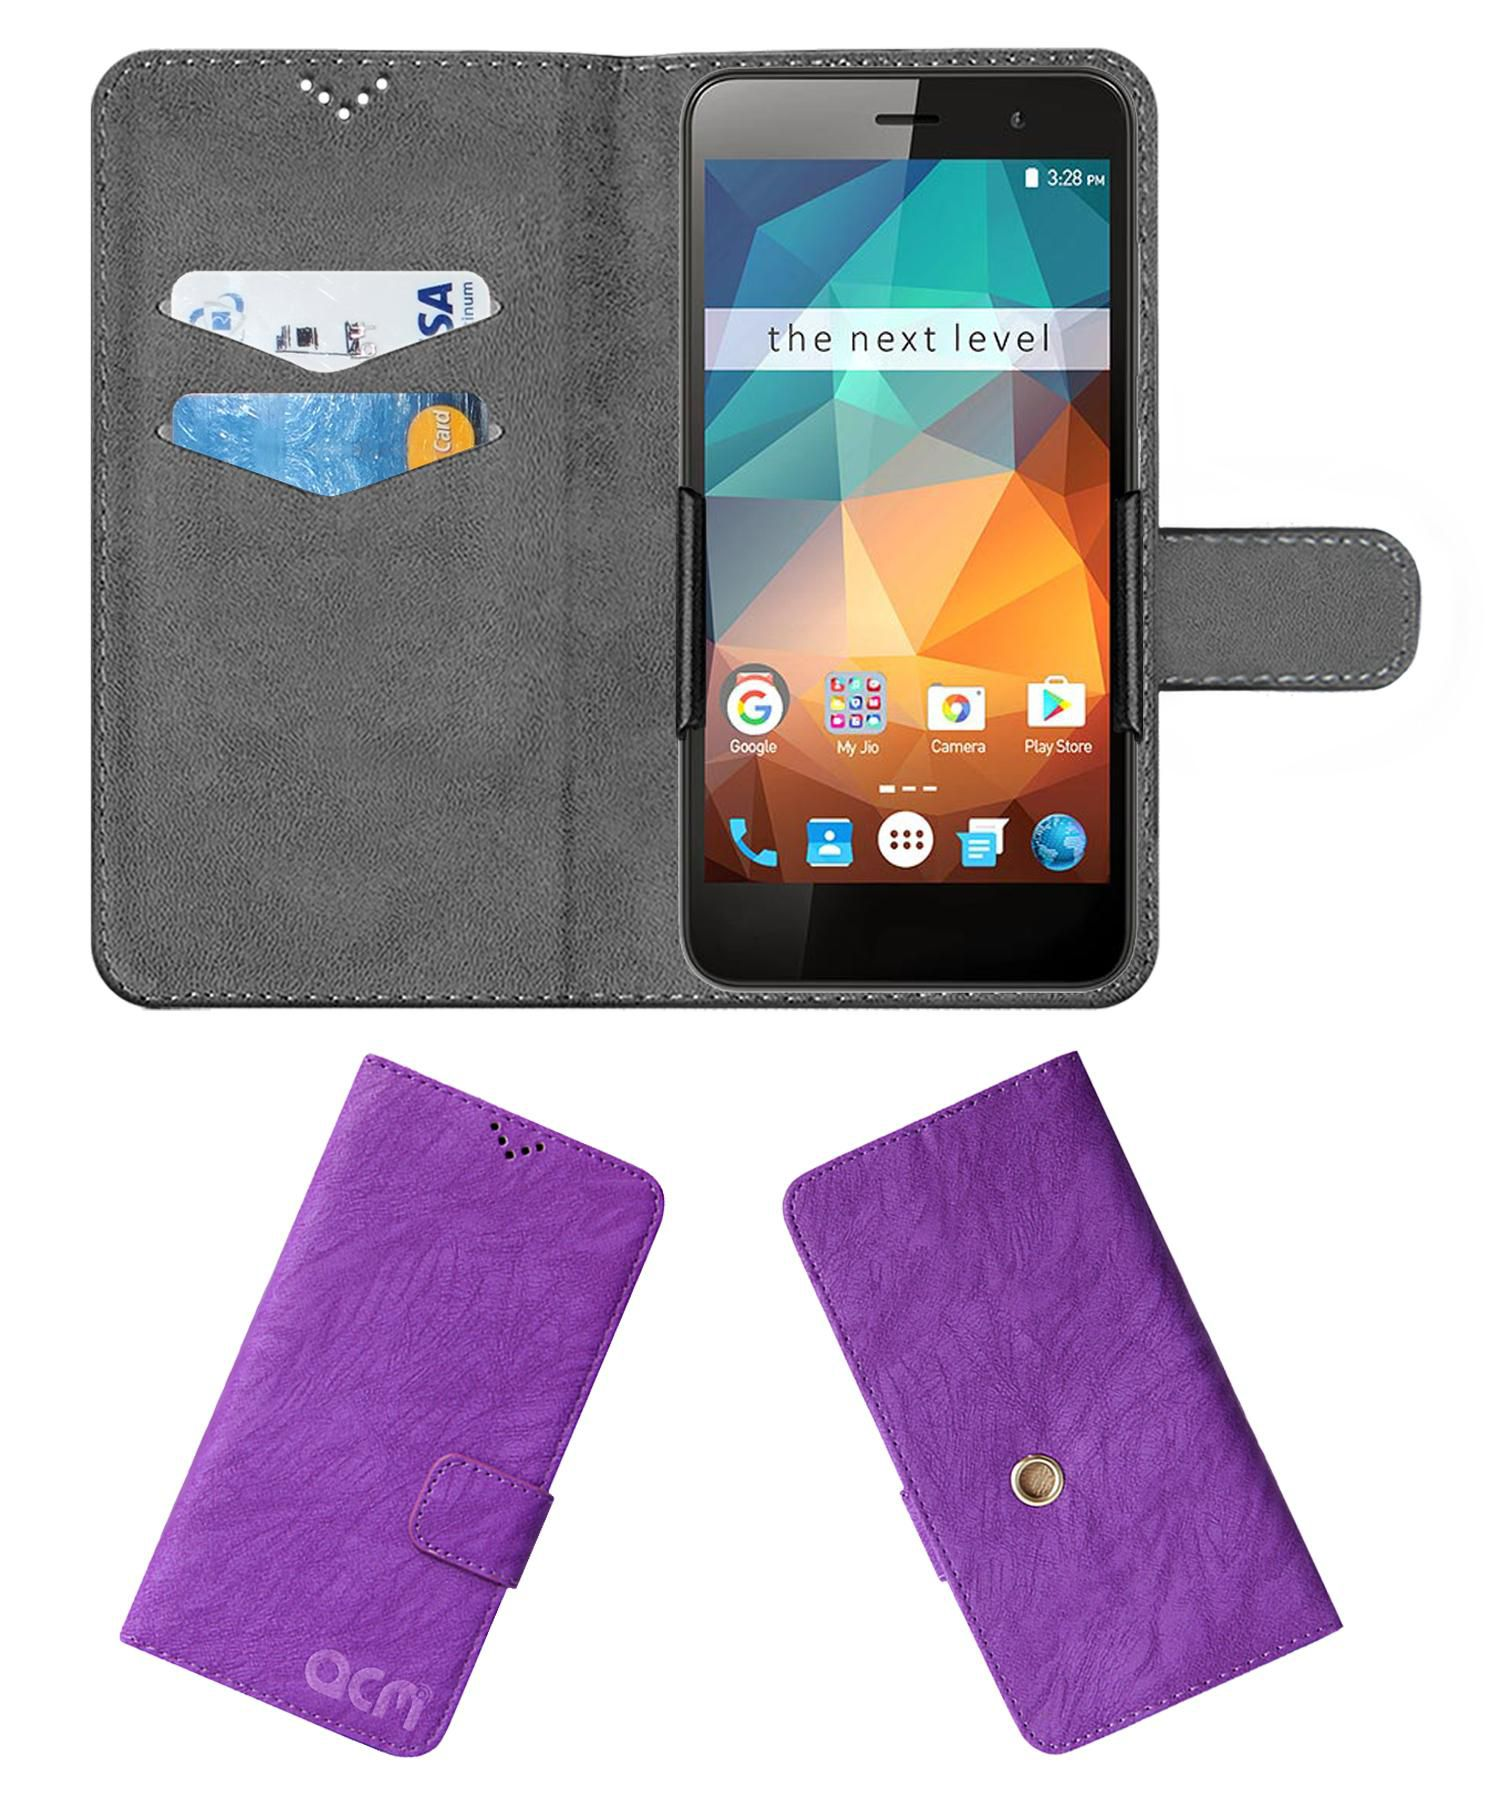 Xolo Era 2X (3 GB RAM) Flip Cover by ACM - Purple Clip holder to hold your mobile securely